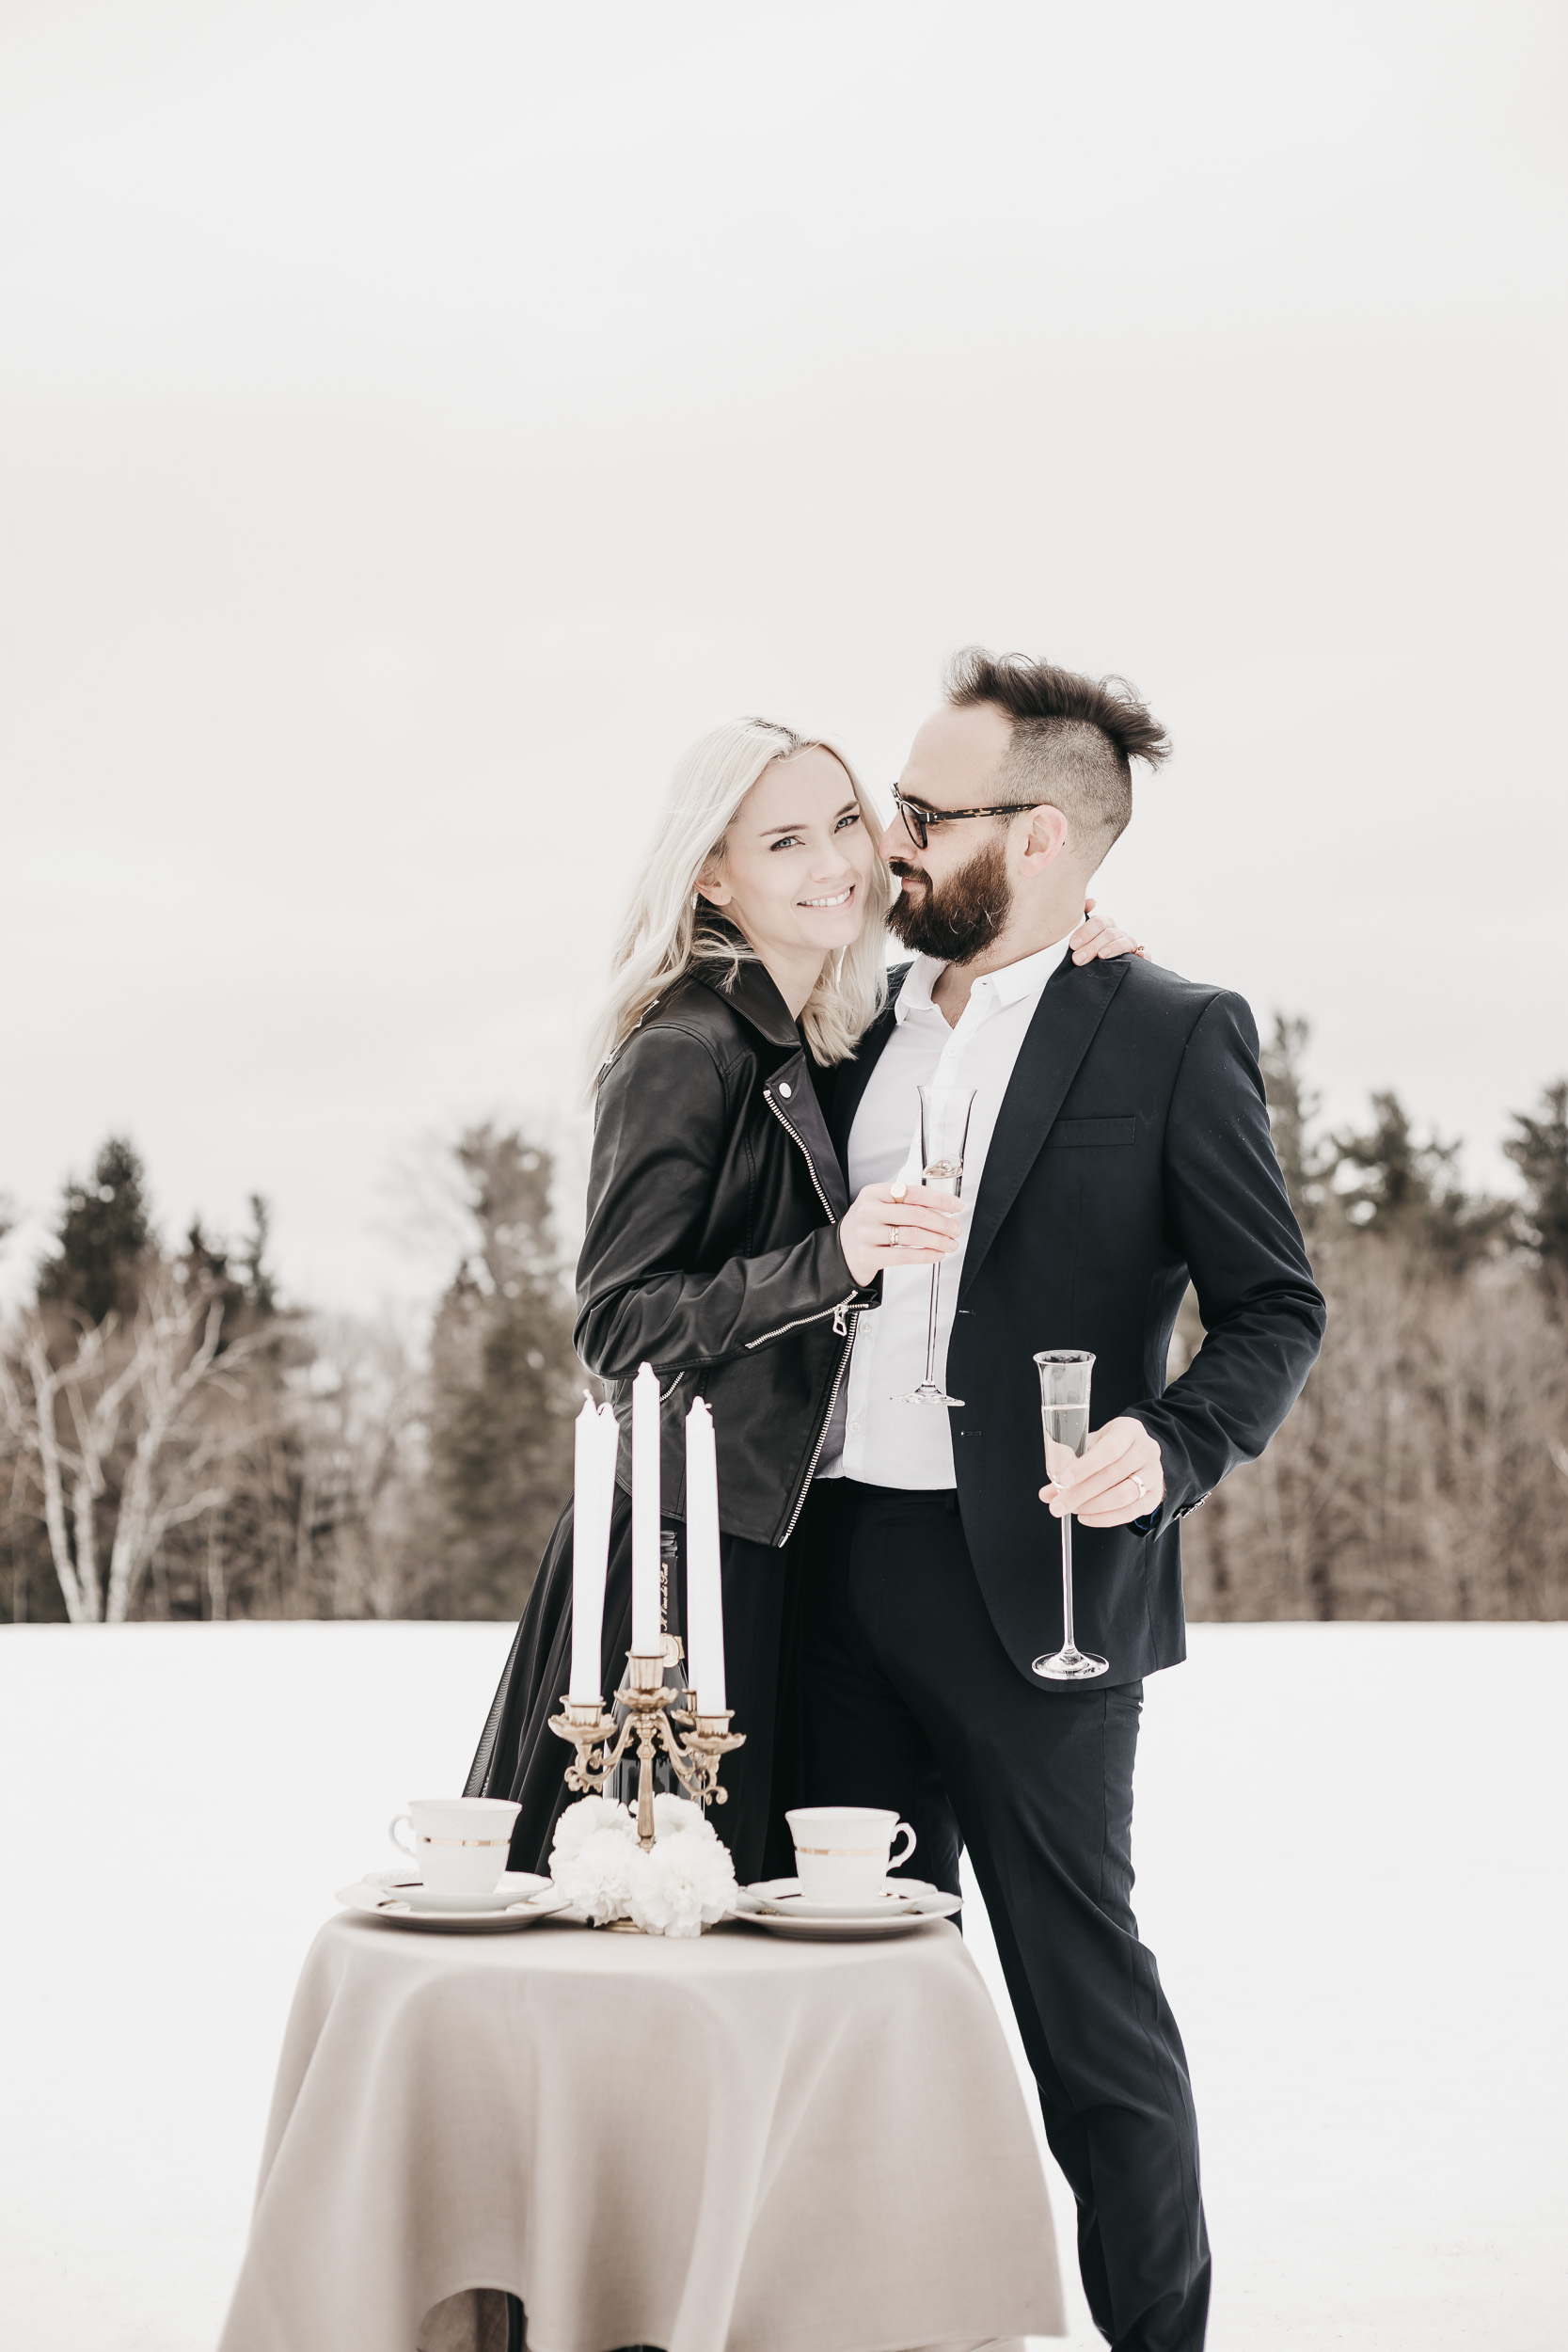 Ottawa-Elopement-Engagement-Photographer-130.jpg